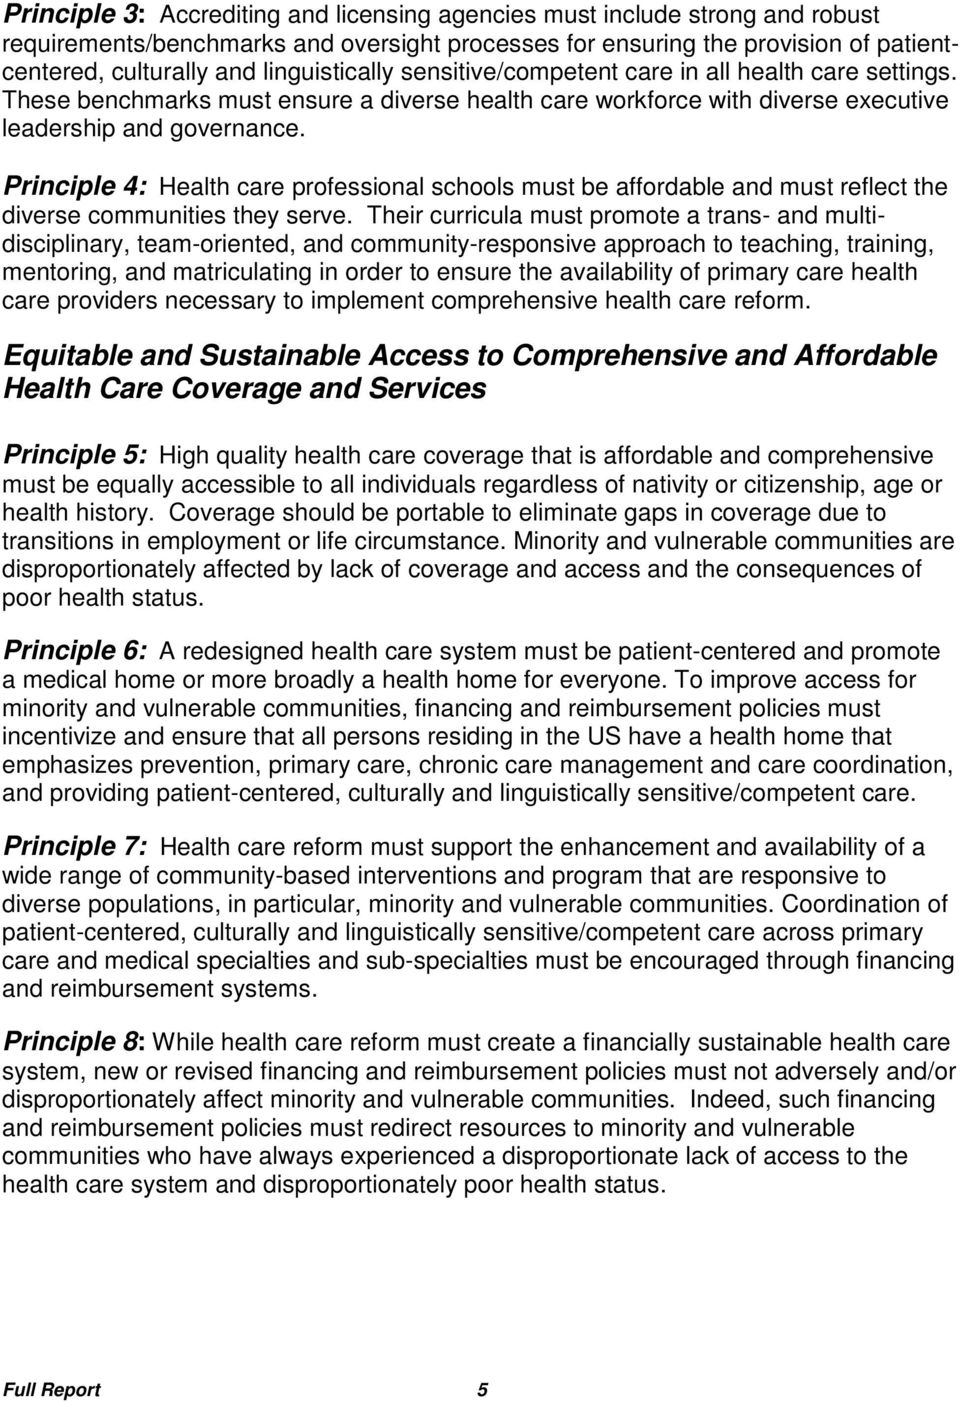 Principle 4: Health care professional schools must be affordable and must reflect the diverse communities they serve.